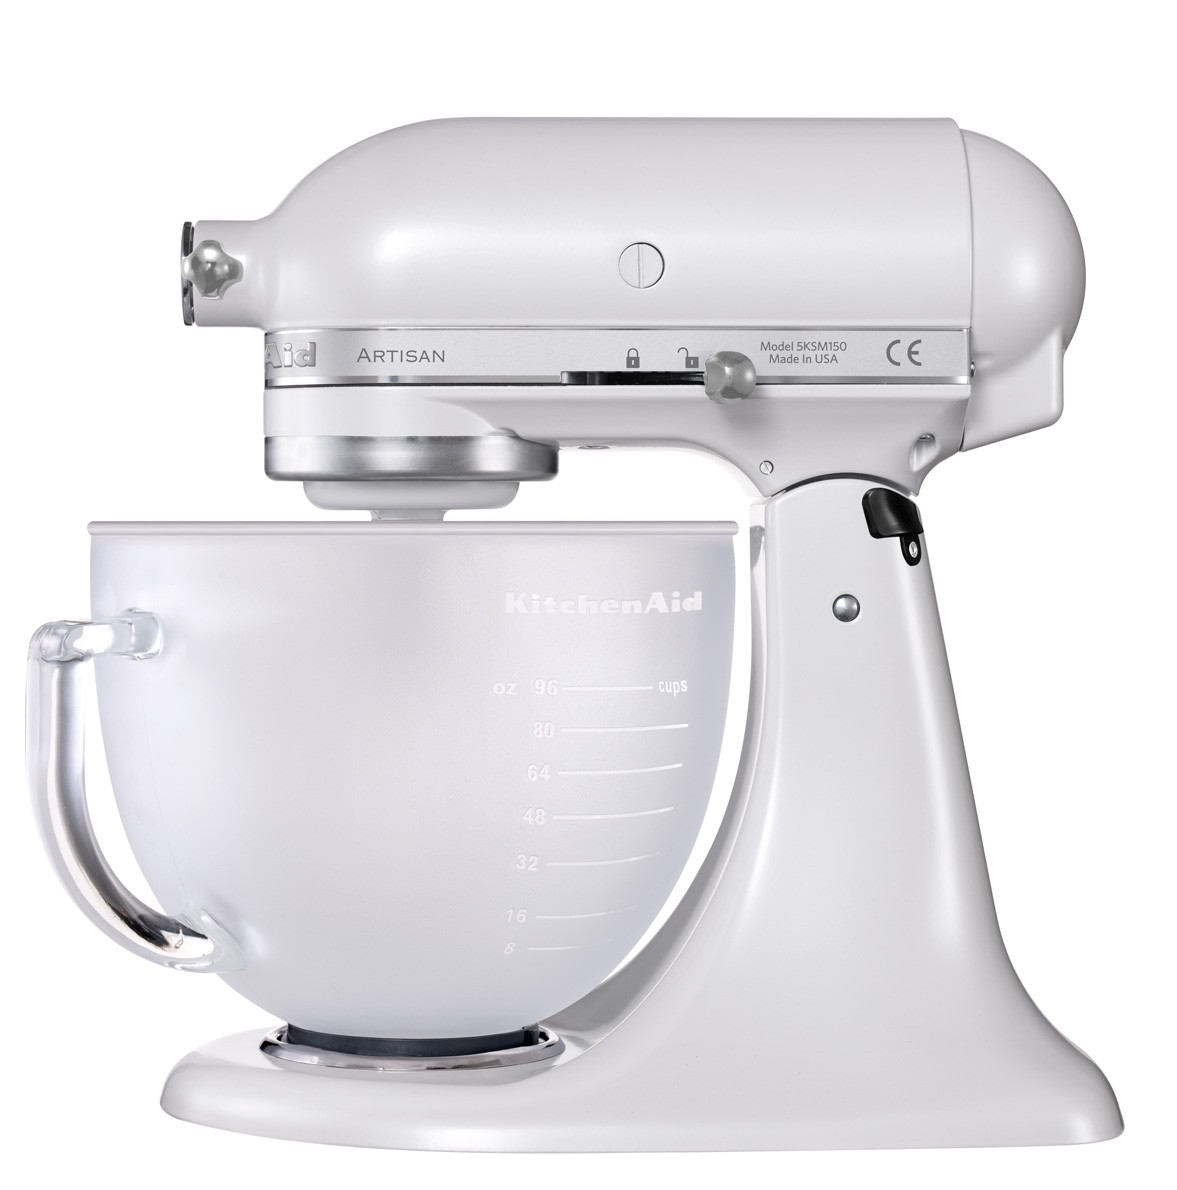 kitchenaid artisan mixer 5ksm156 fp parelmoer. Black Bedroom Furniture Sets. Home Design Ideas